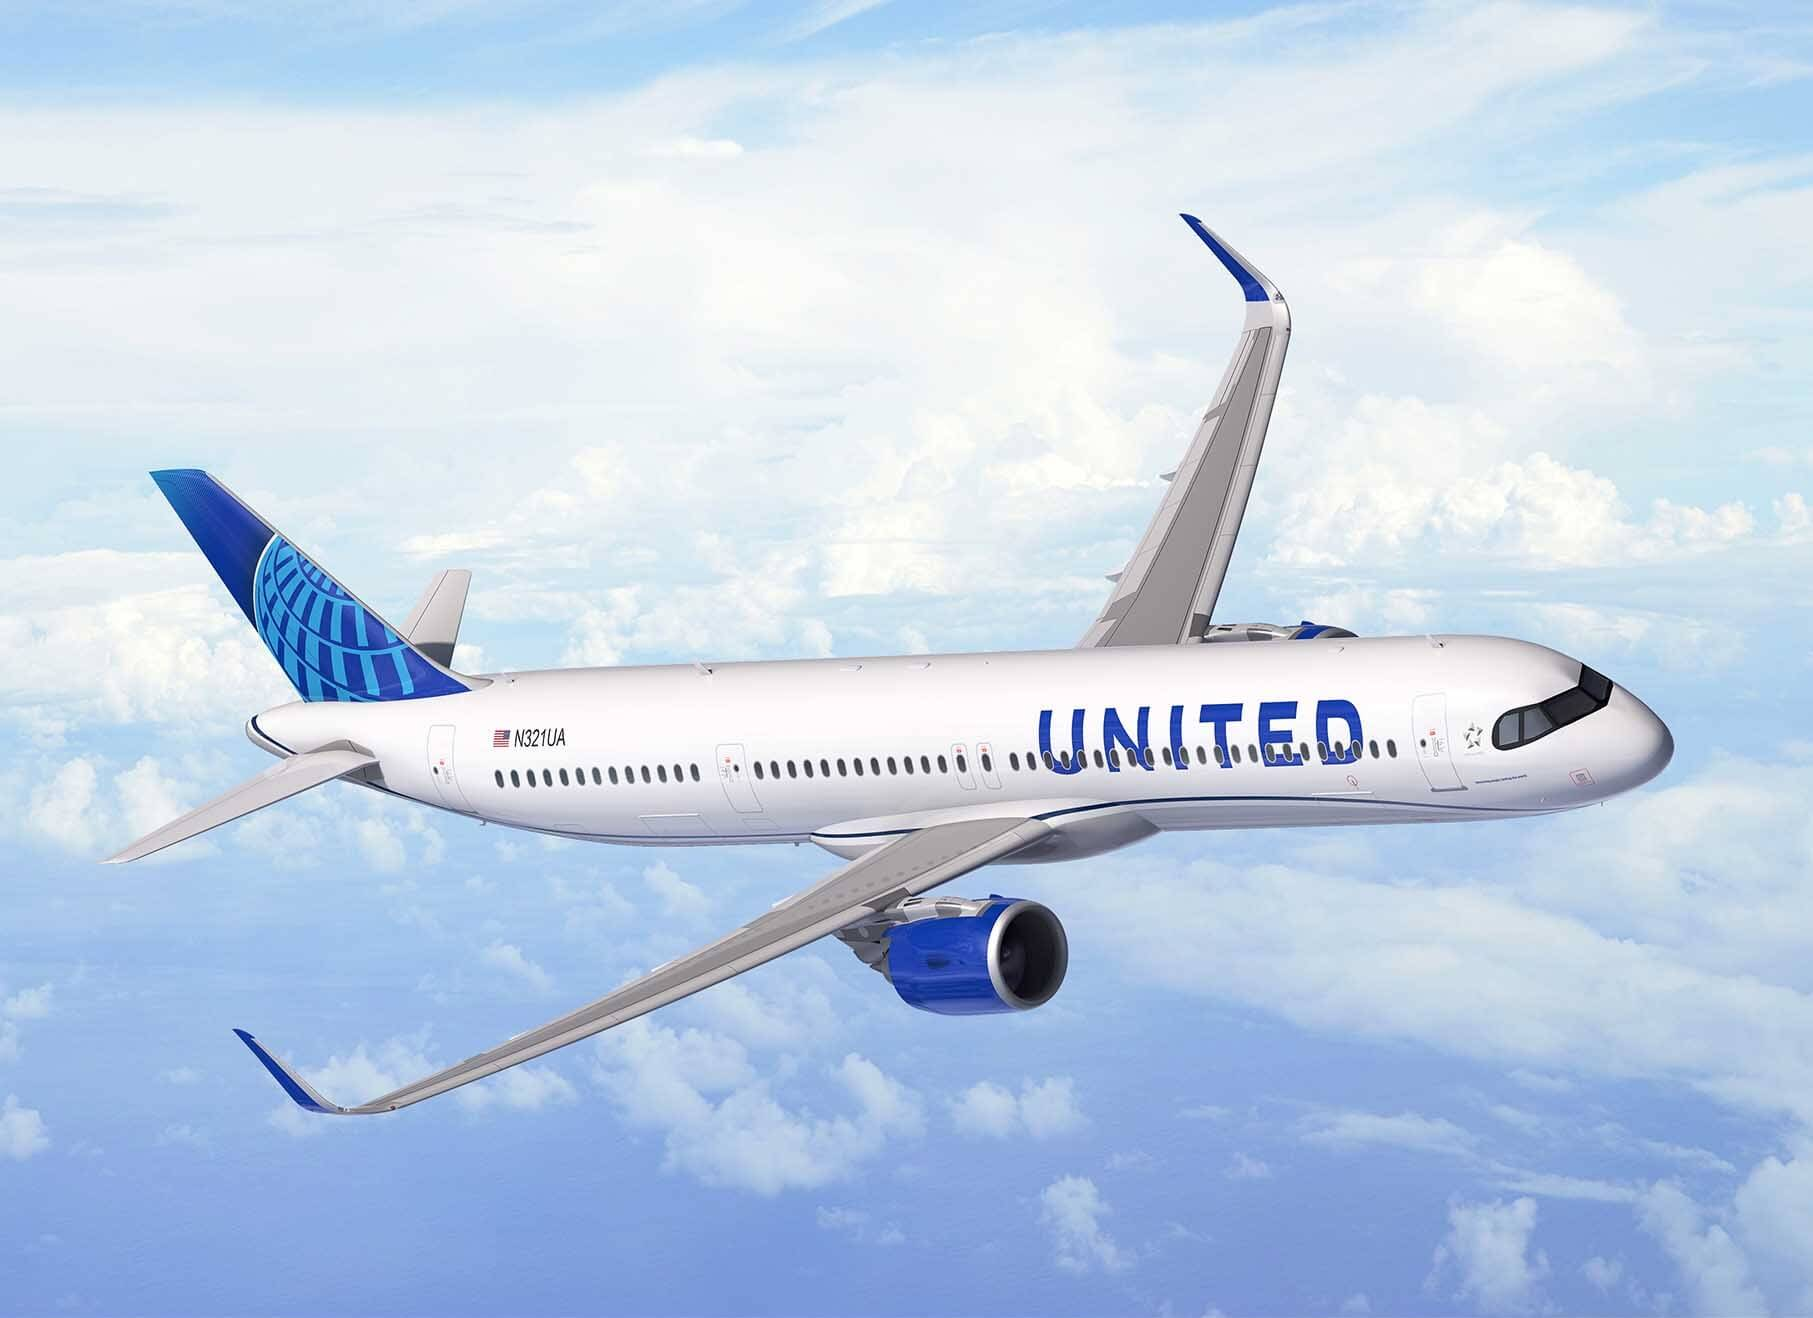 United places big order for state-of-the-art aircraft